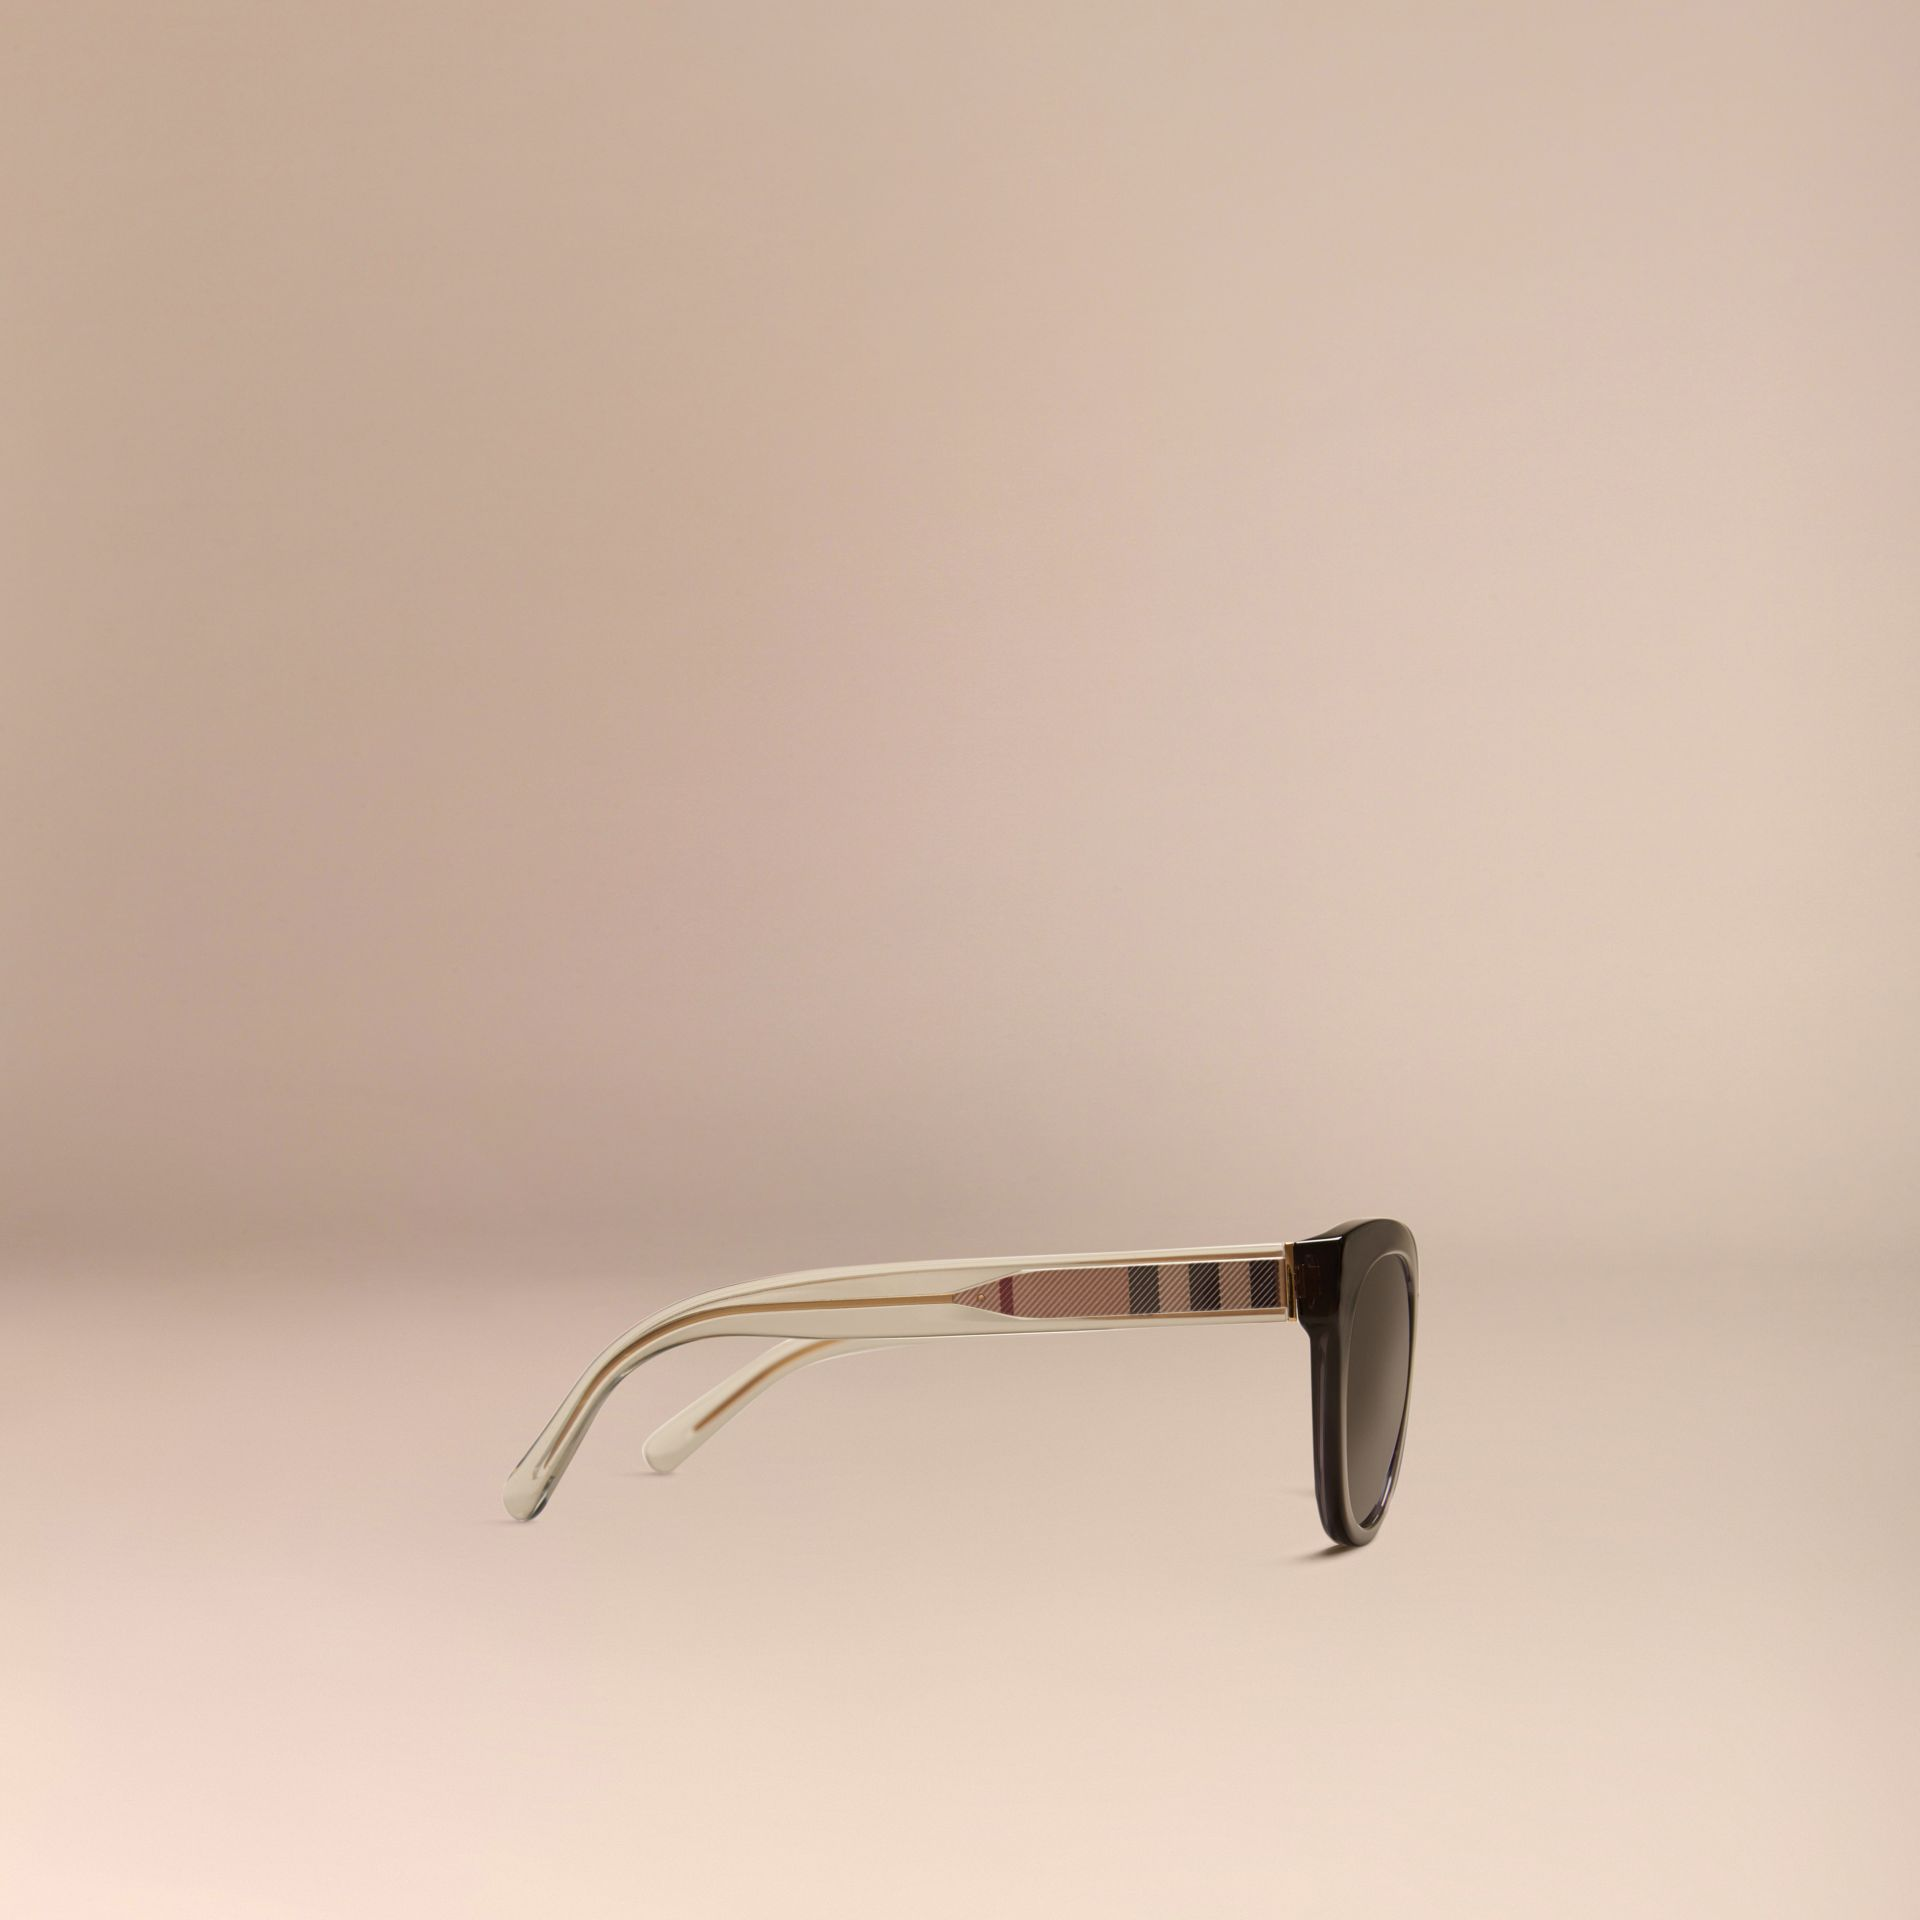 Dark grey Check Detail Oval Sunglasses Dark Grey - gallery image 5